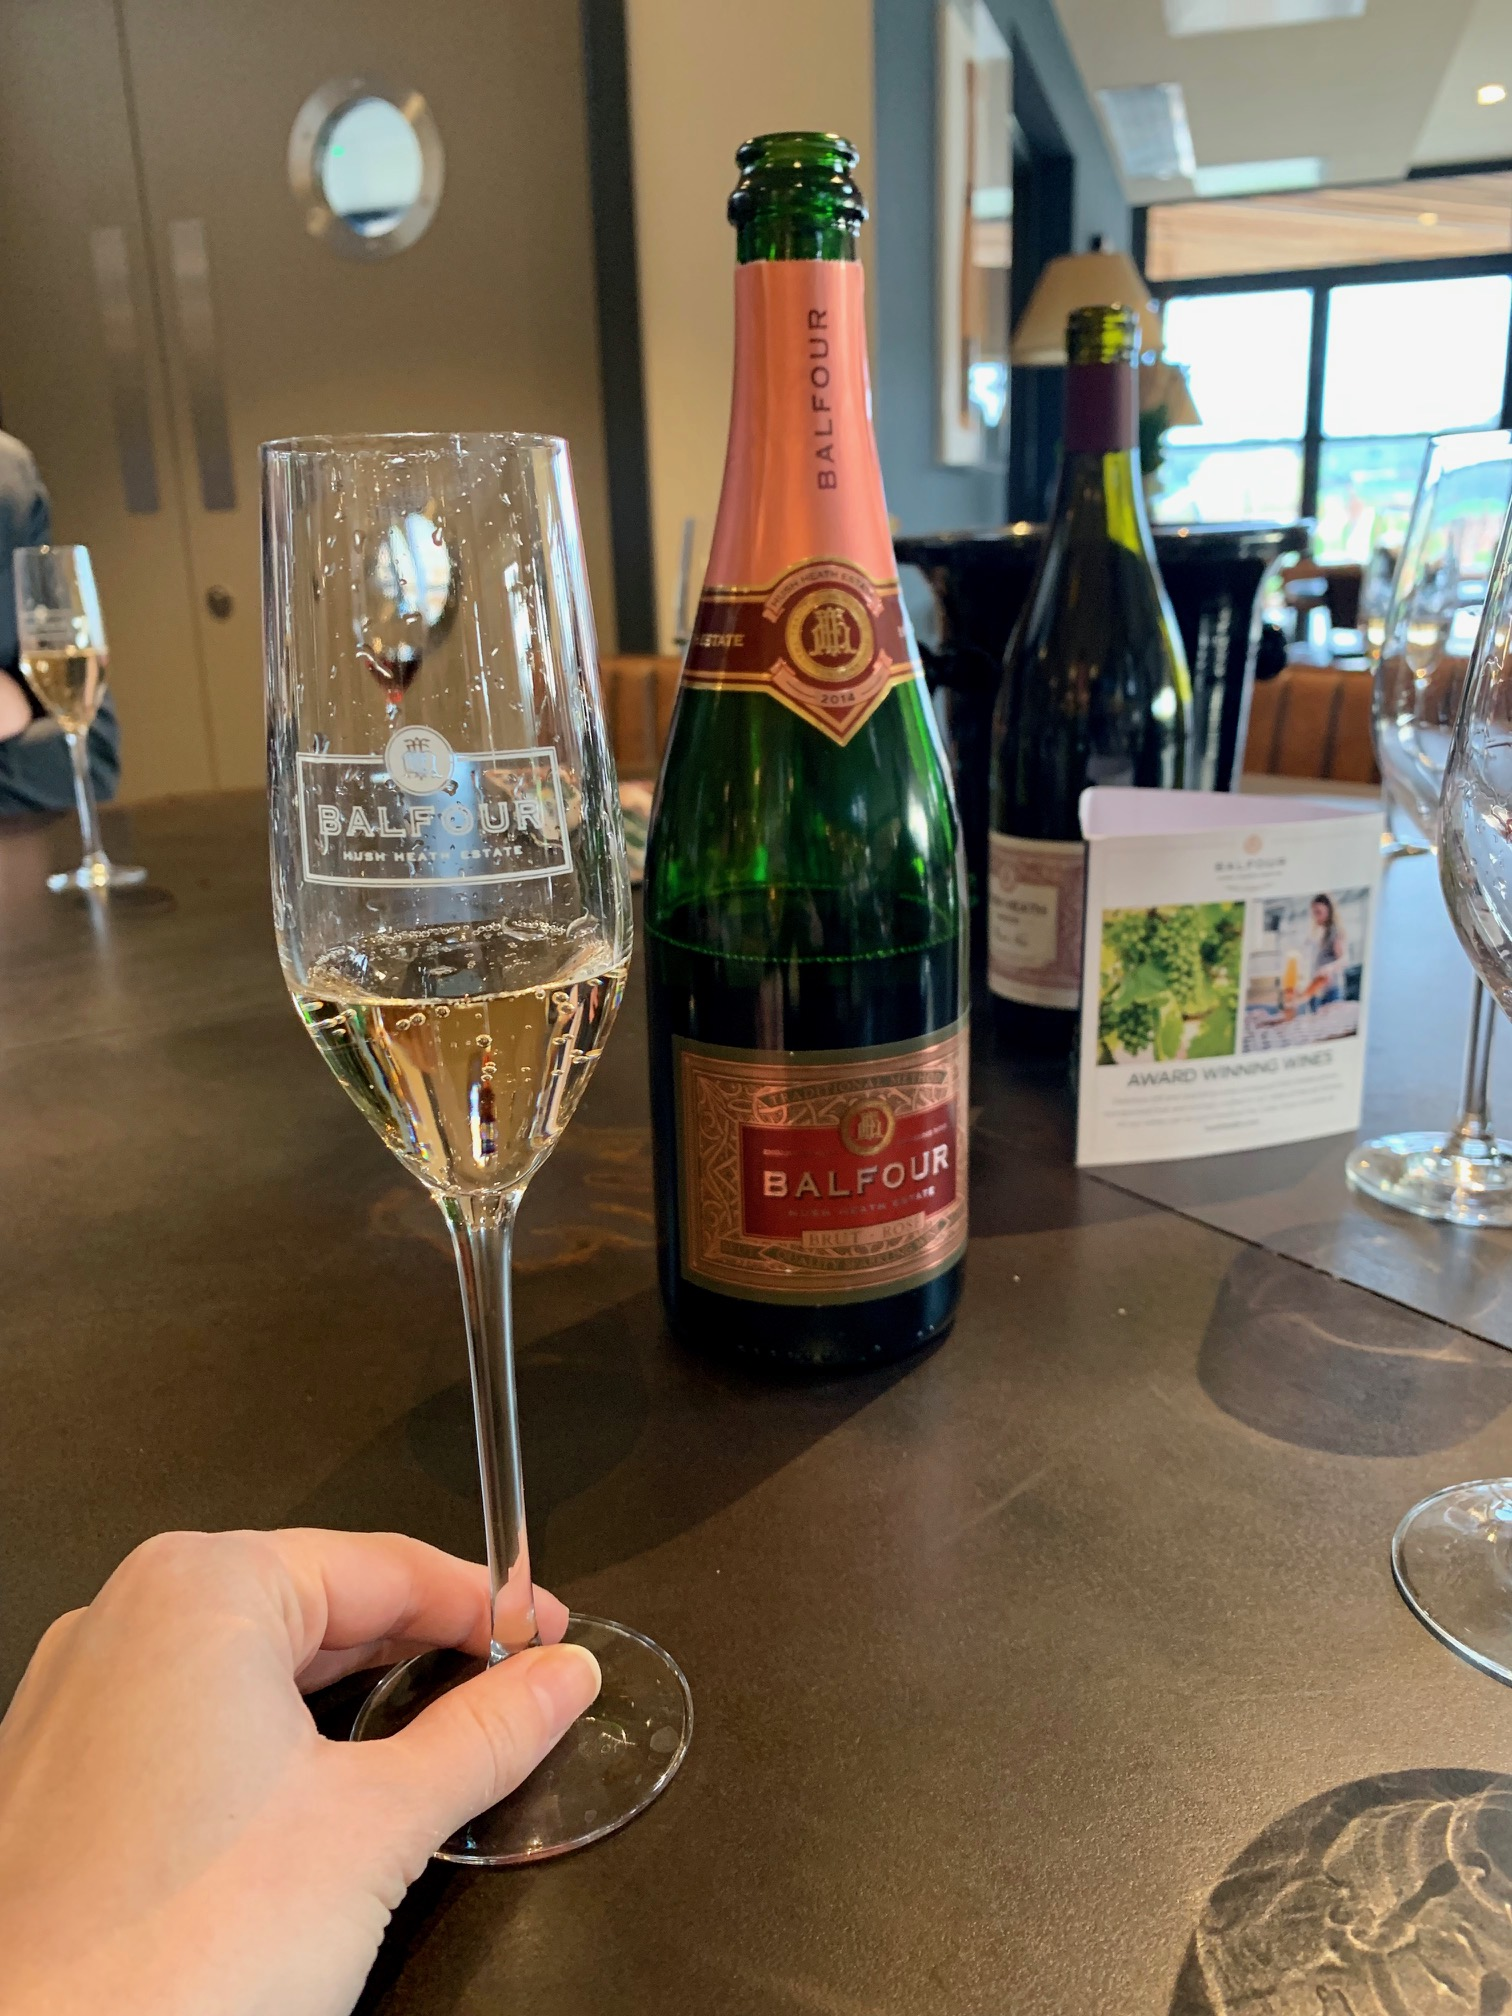 Hush Heath - Balfour Sparkling Wine